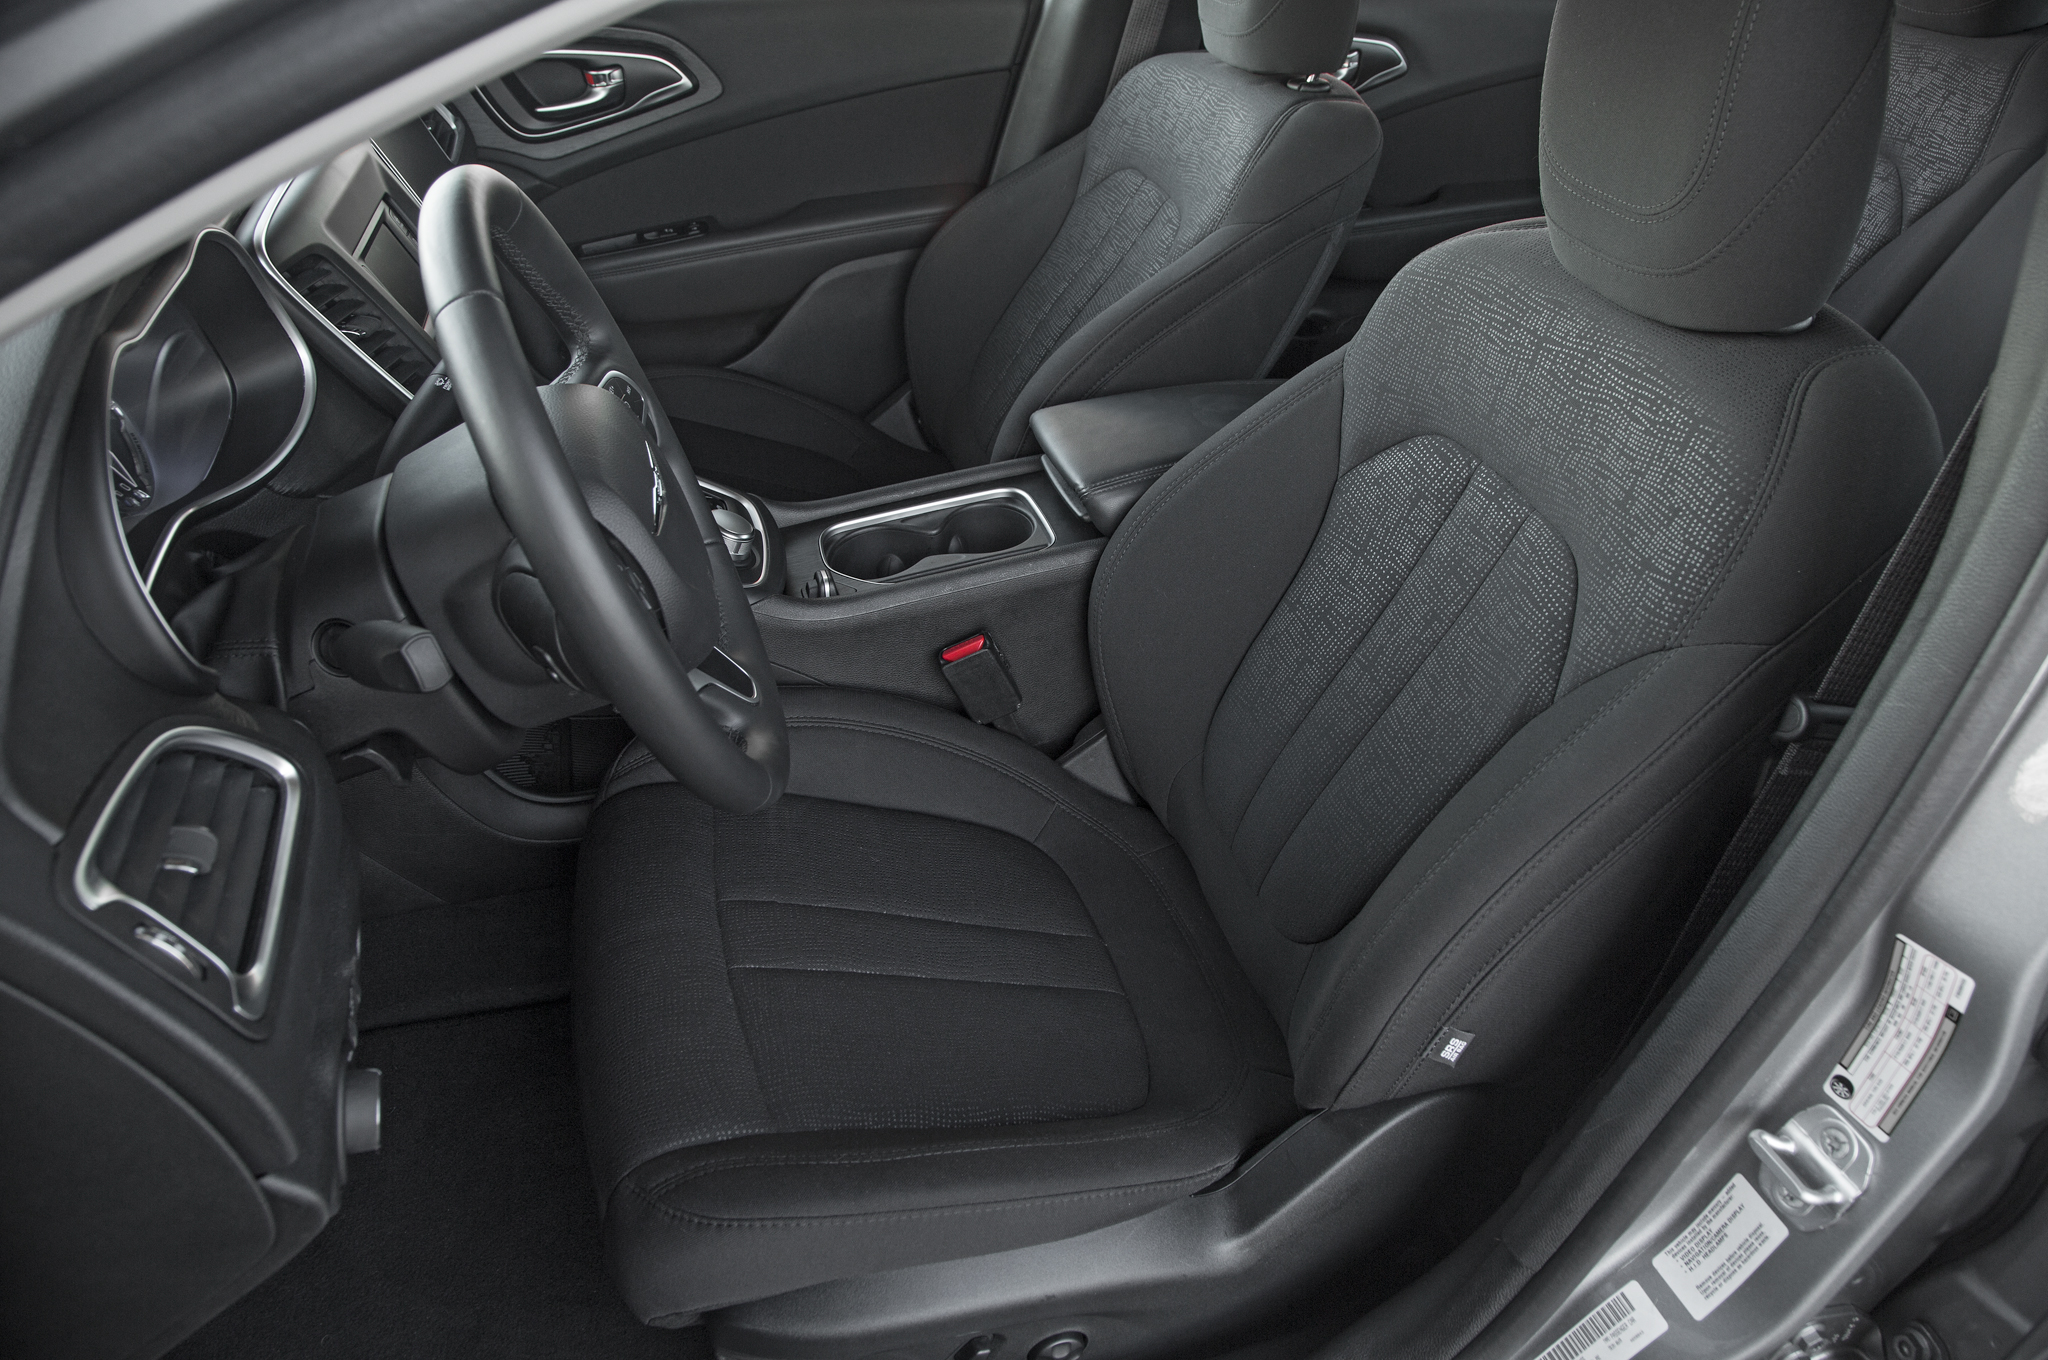 2015 Chrysler 200 Front Interior (Photo 8 of 11)